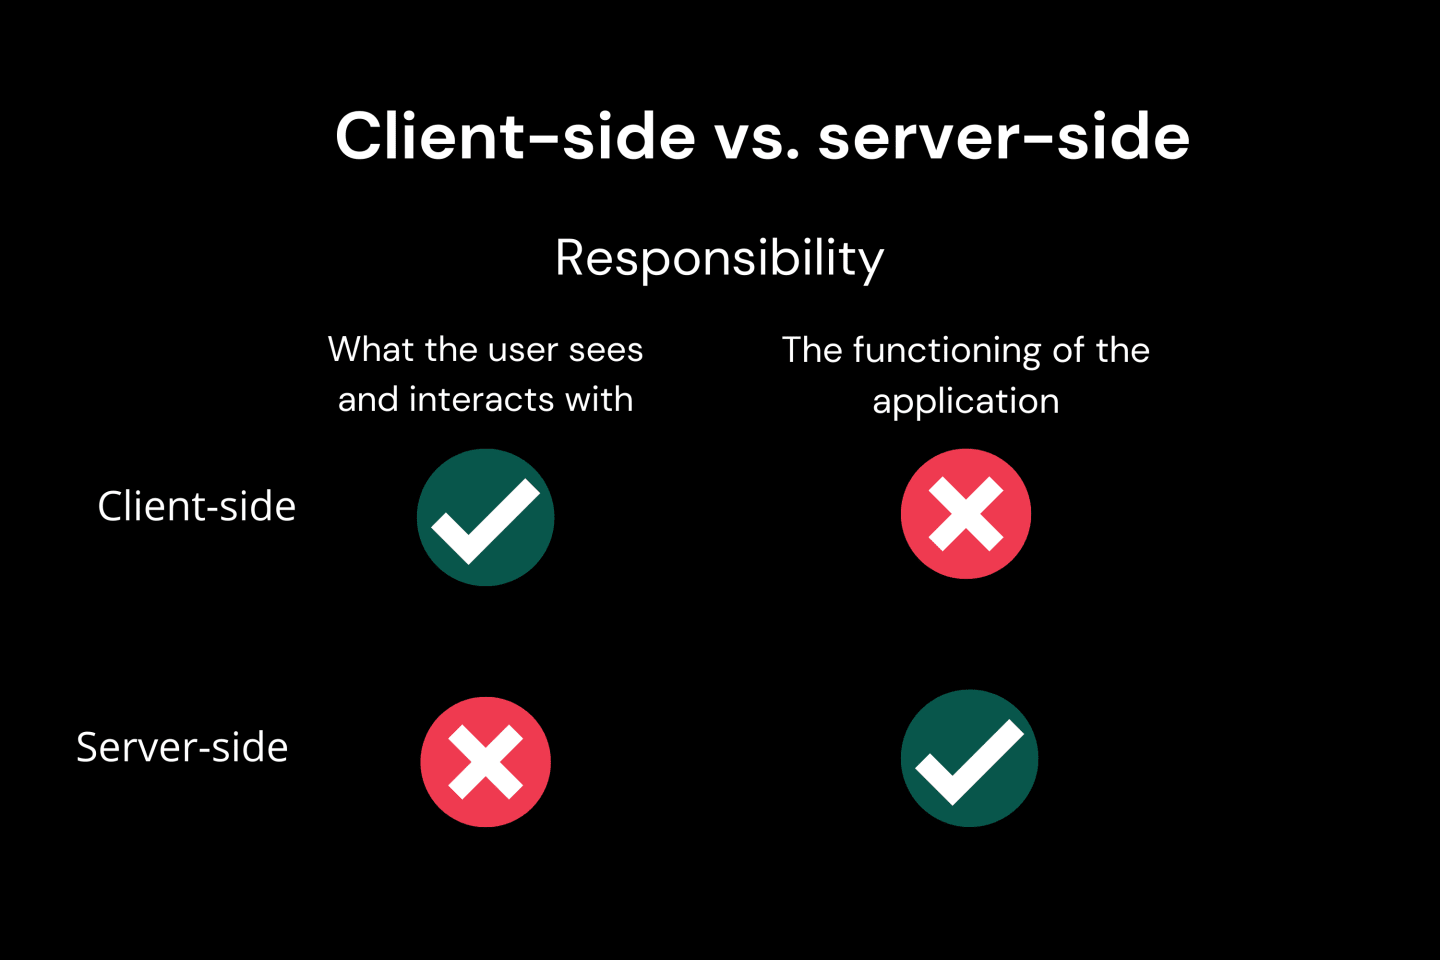 A graphic summarizing the differences between cliendside and serverside